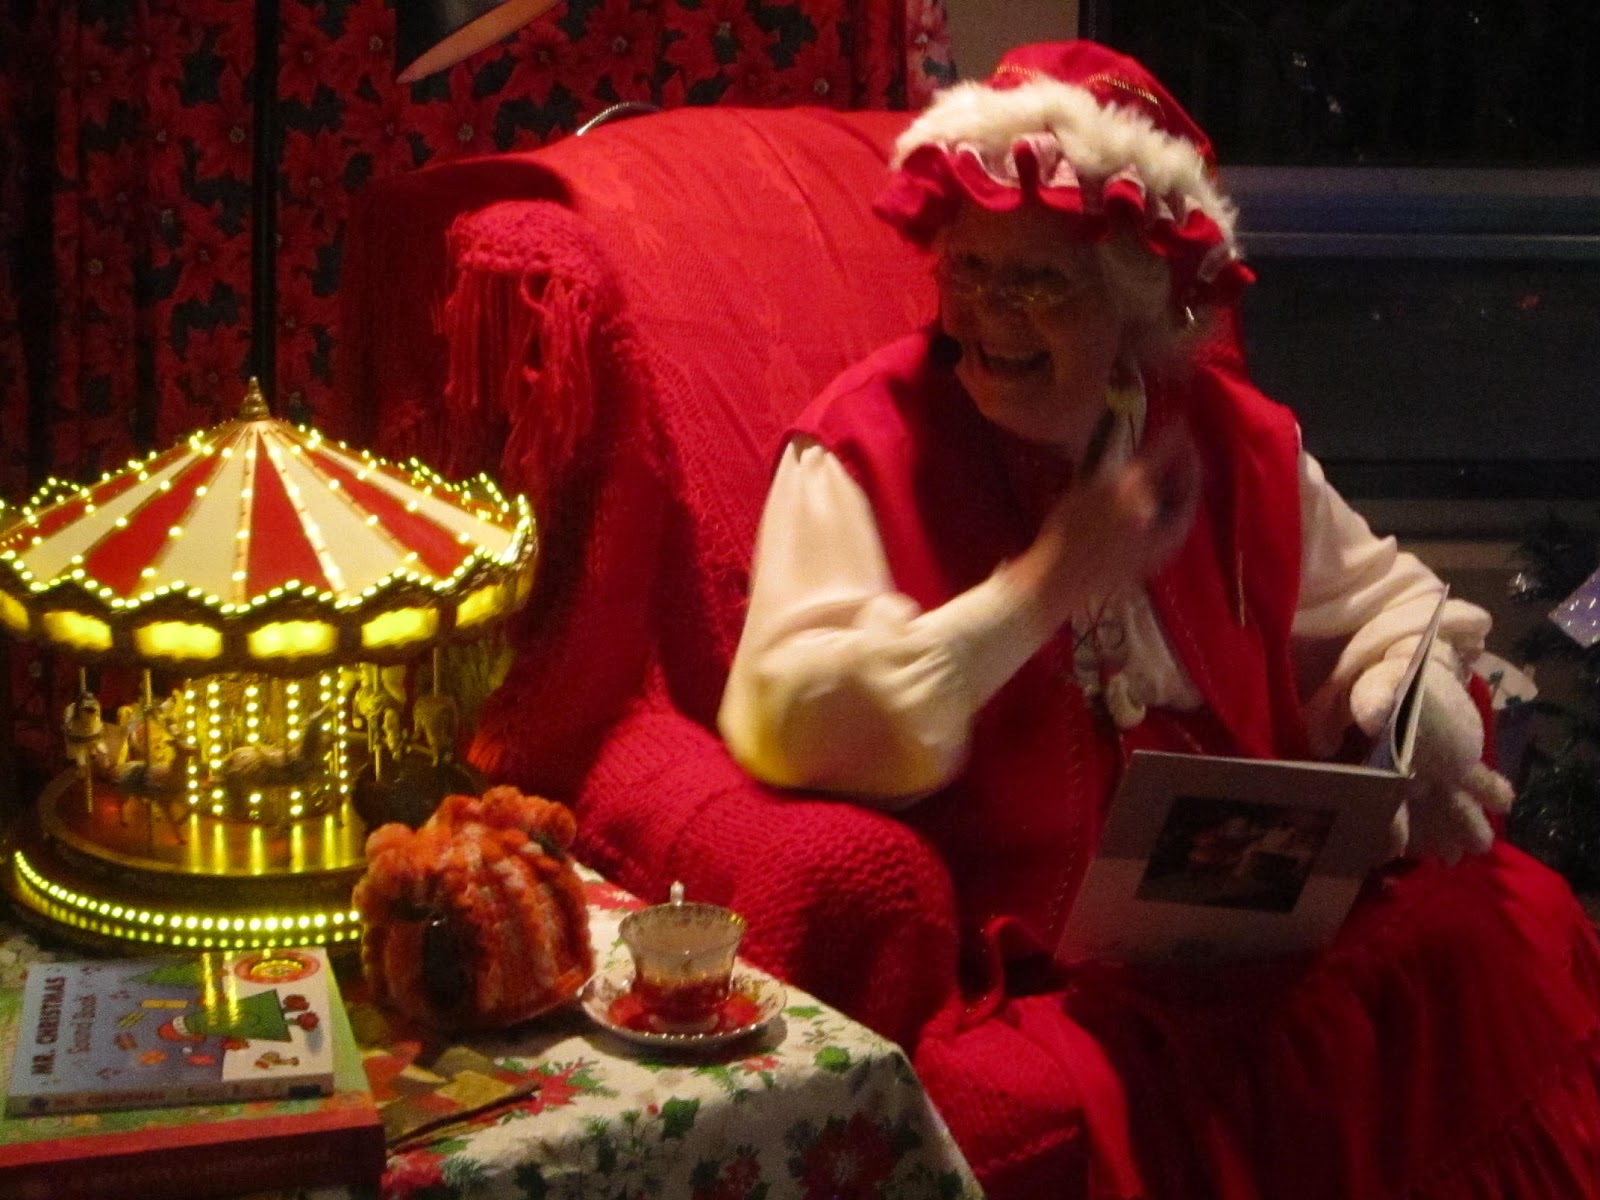 Mrs. Claus, Santa Claus, storytime, Christmas, kids, family